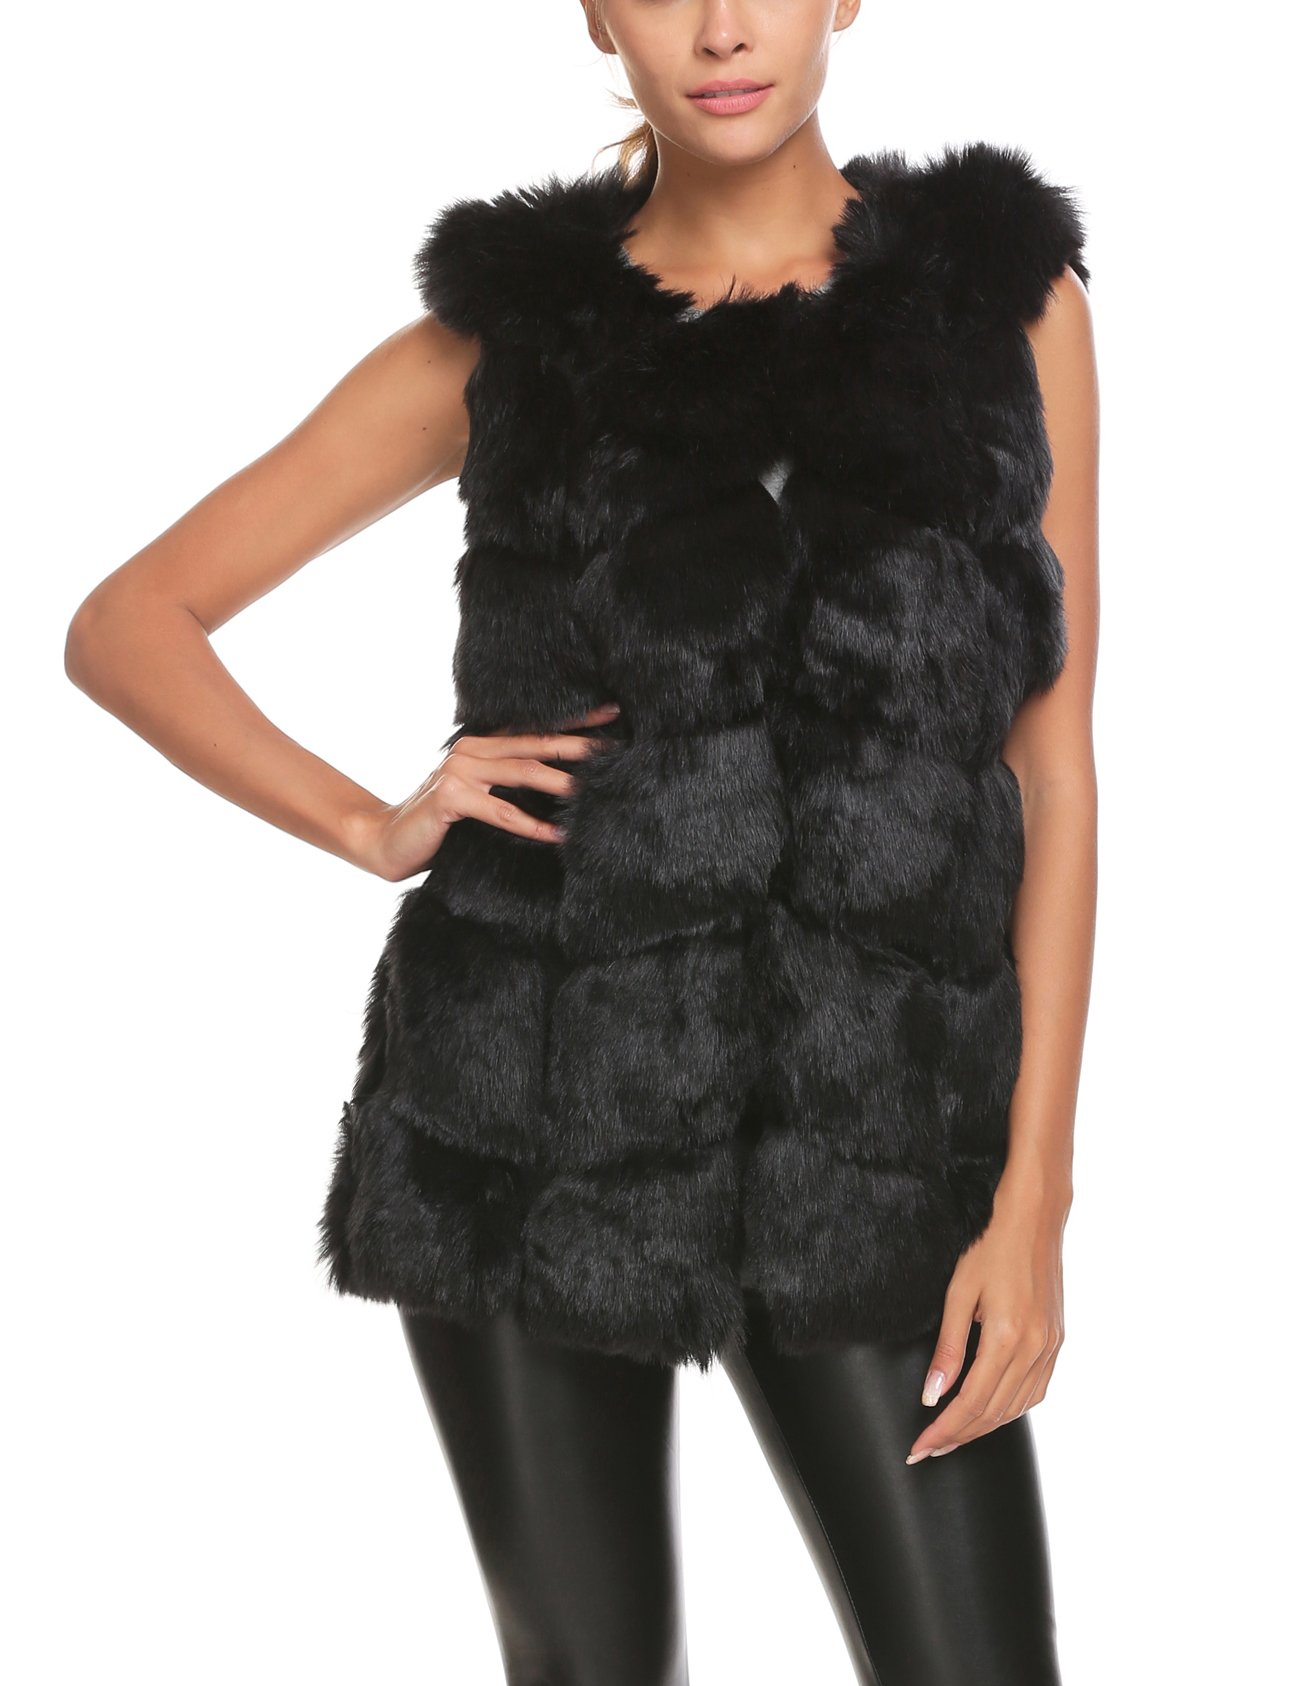 Soteer Women's Plus Size Winter Faux Fur Vest Gilet Sleeve Coat Jacket Ourwear For Winter Black L